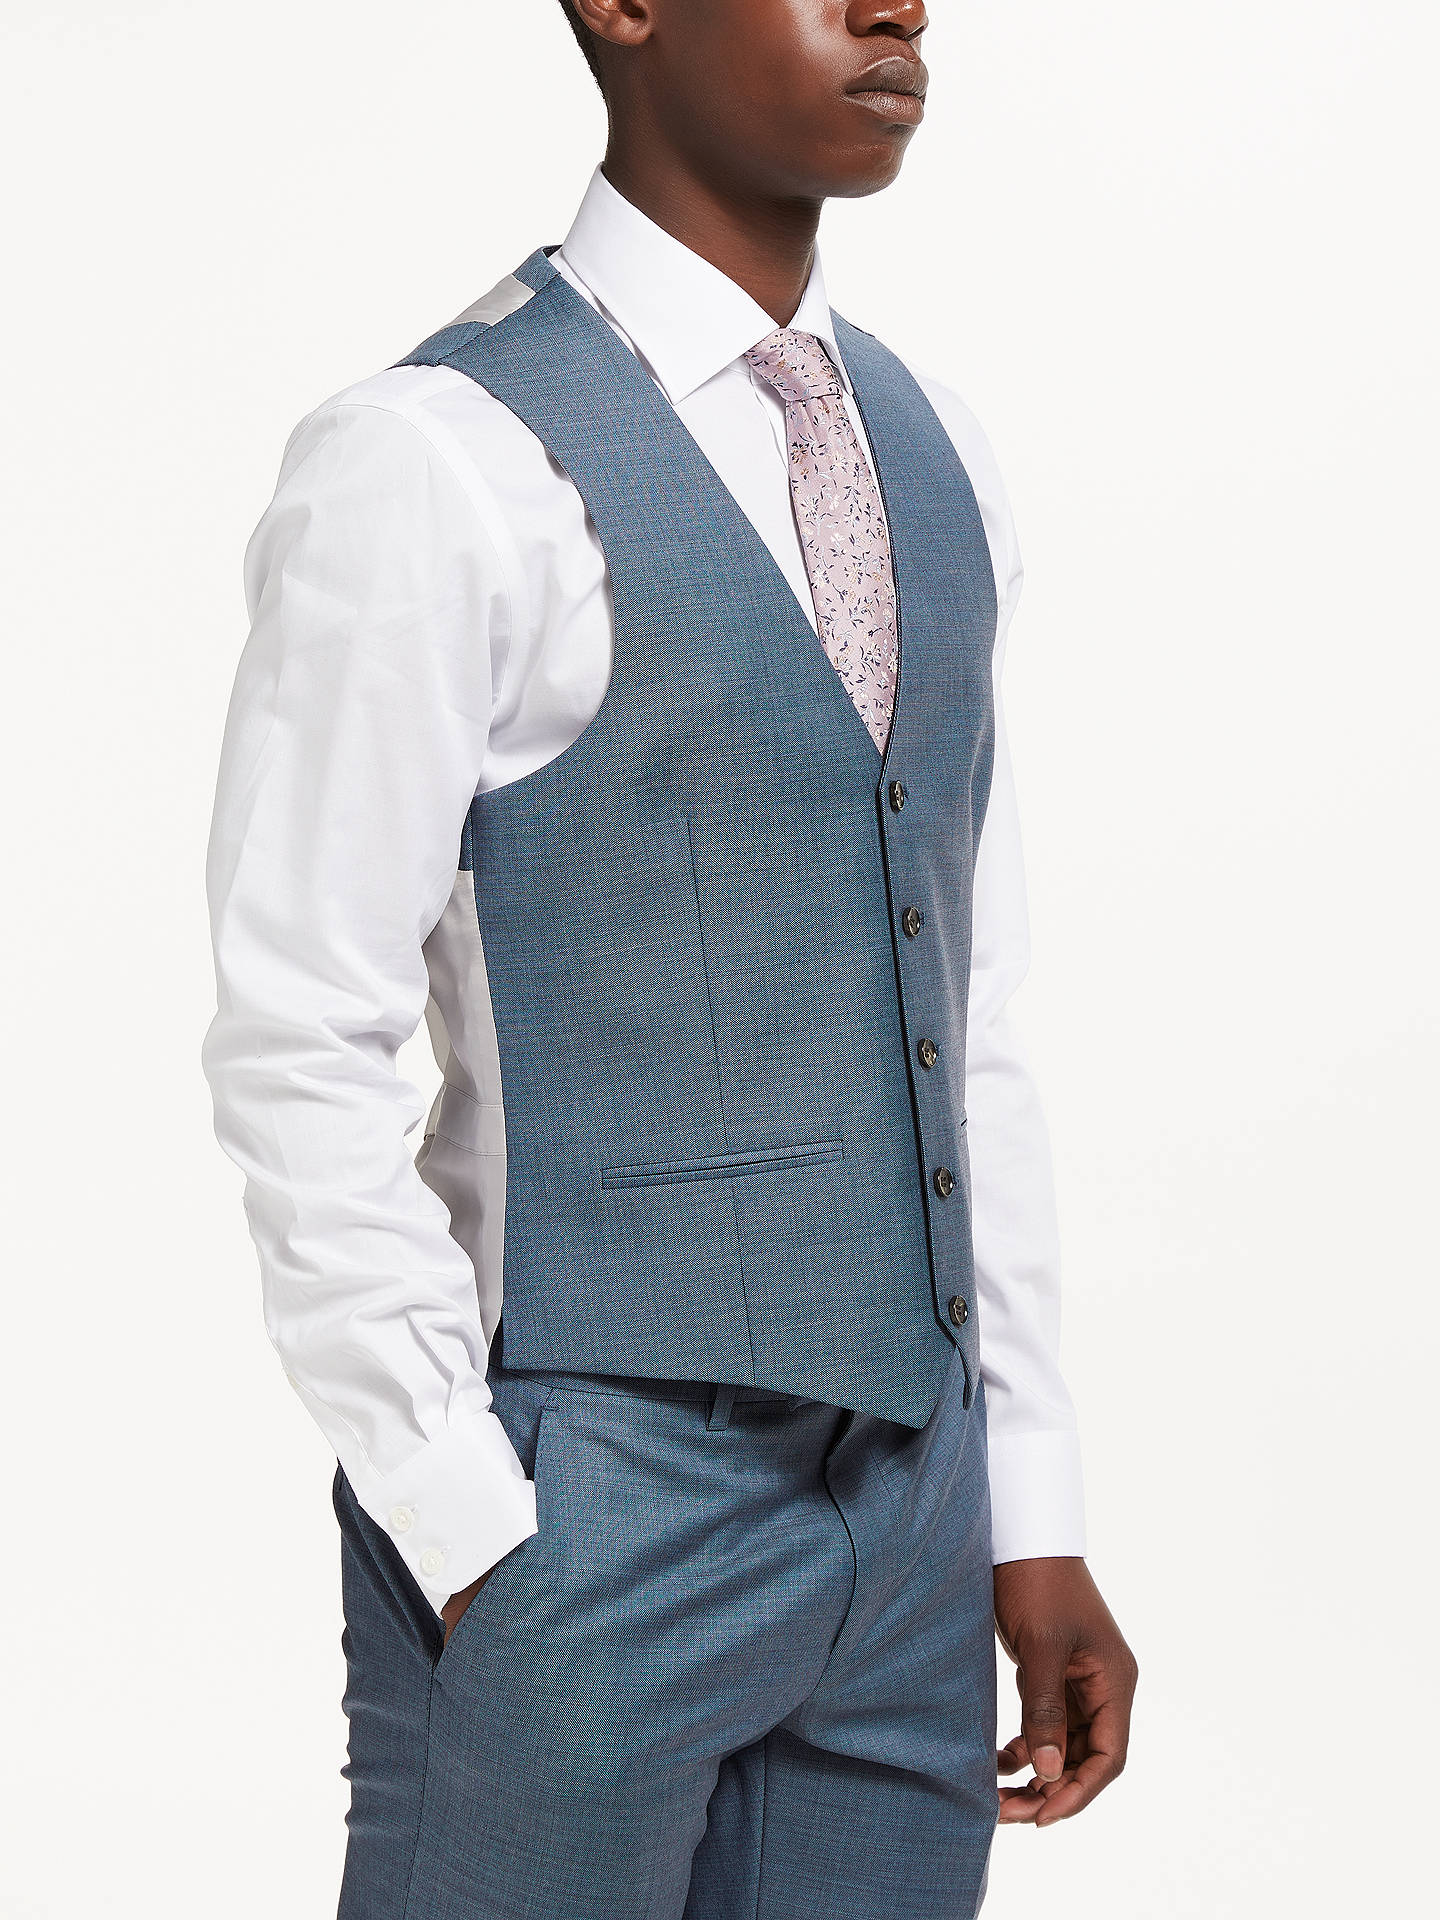 4e707b767 ... Buy John Lewis & Partners Woven in Italy Super 130s Wool Sharkskin  Waistcoat, Steel Blue